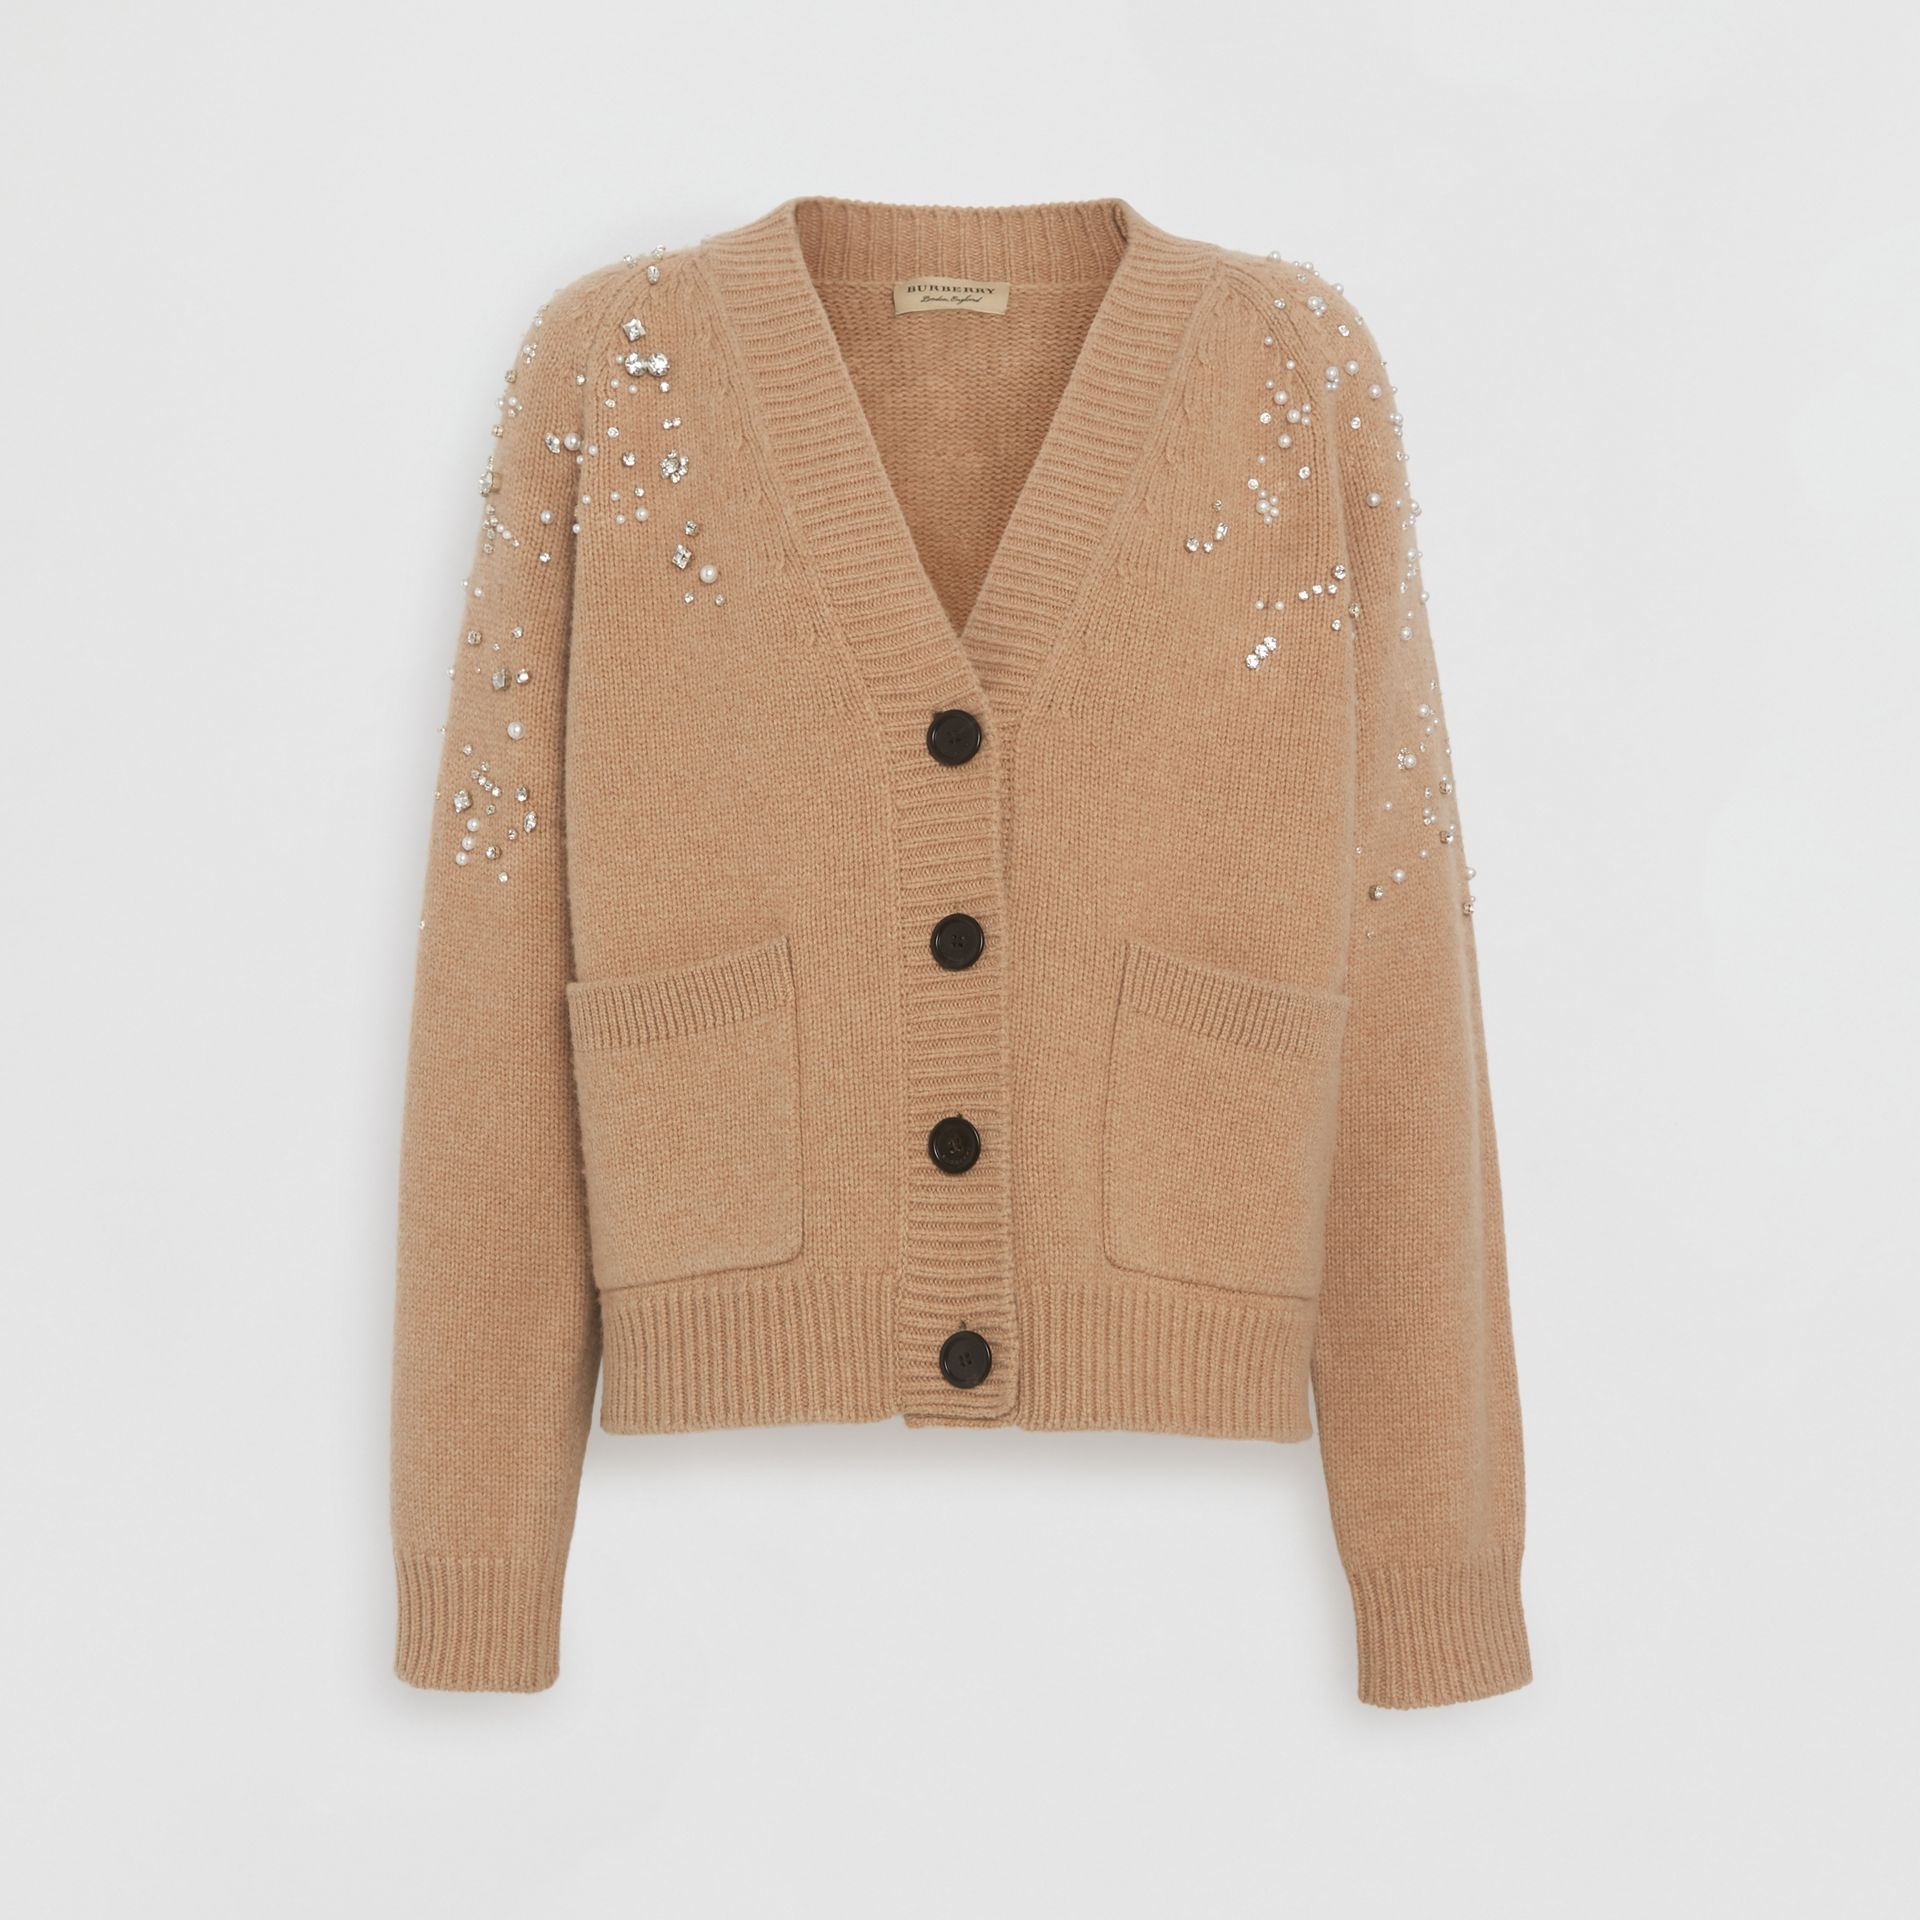 Crystal-embellished Merino Wool Cardigan in Camel - Women | Burberry - gallery image 3